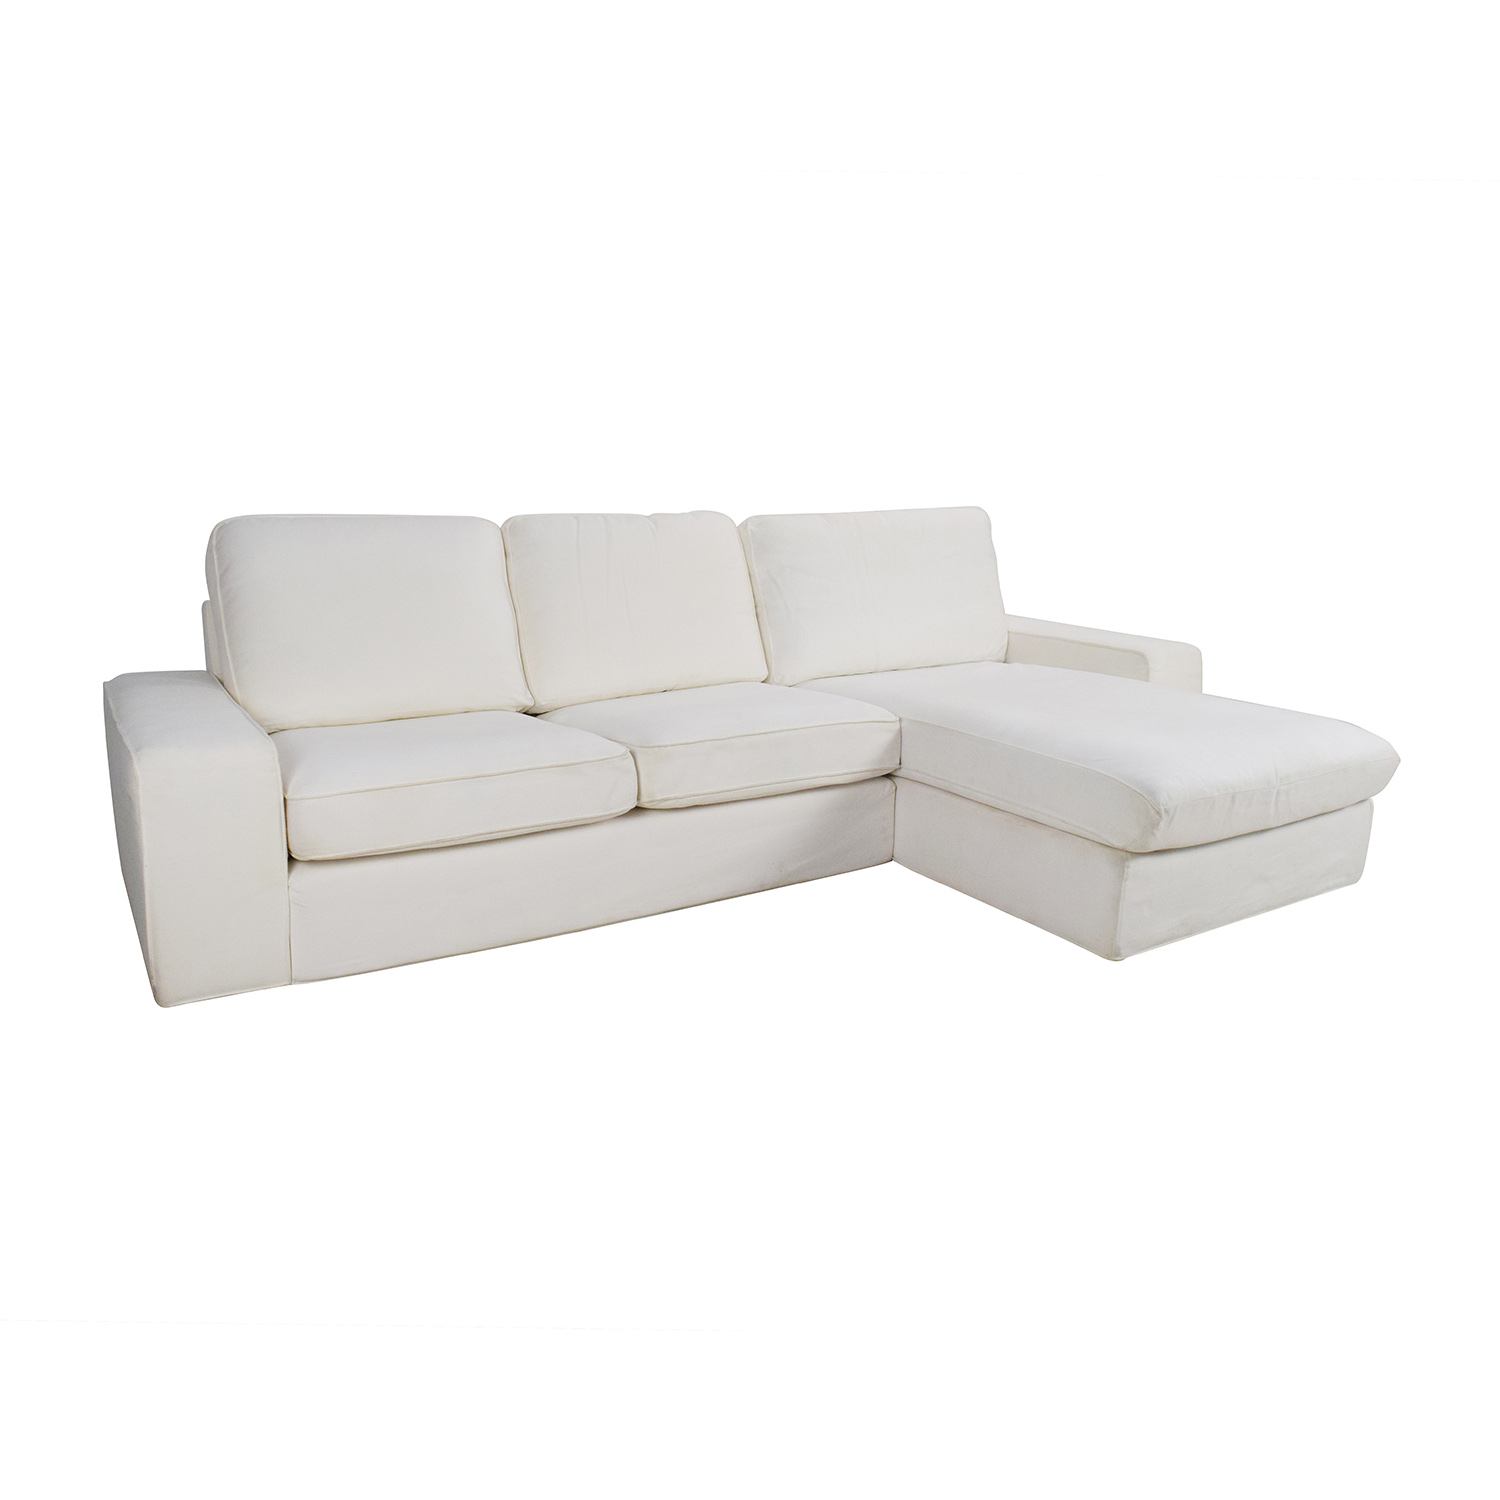 ikea ekeskog sofa dimensions jo clic clac bed review 69 off kivik and chaise sofas